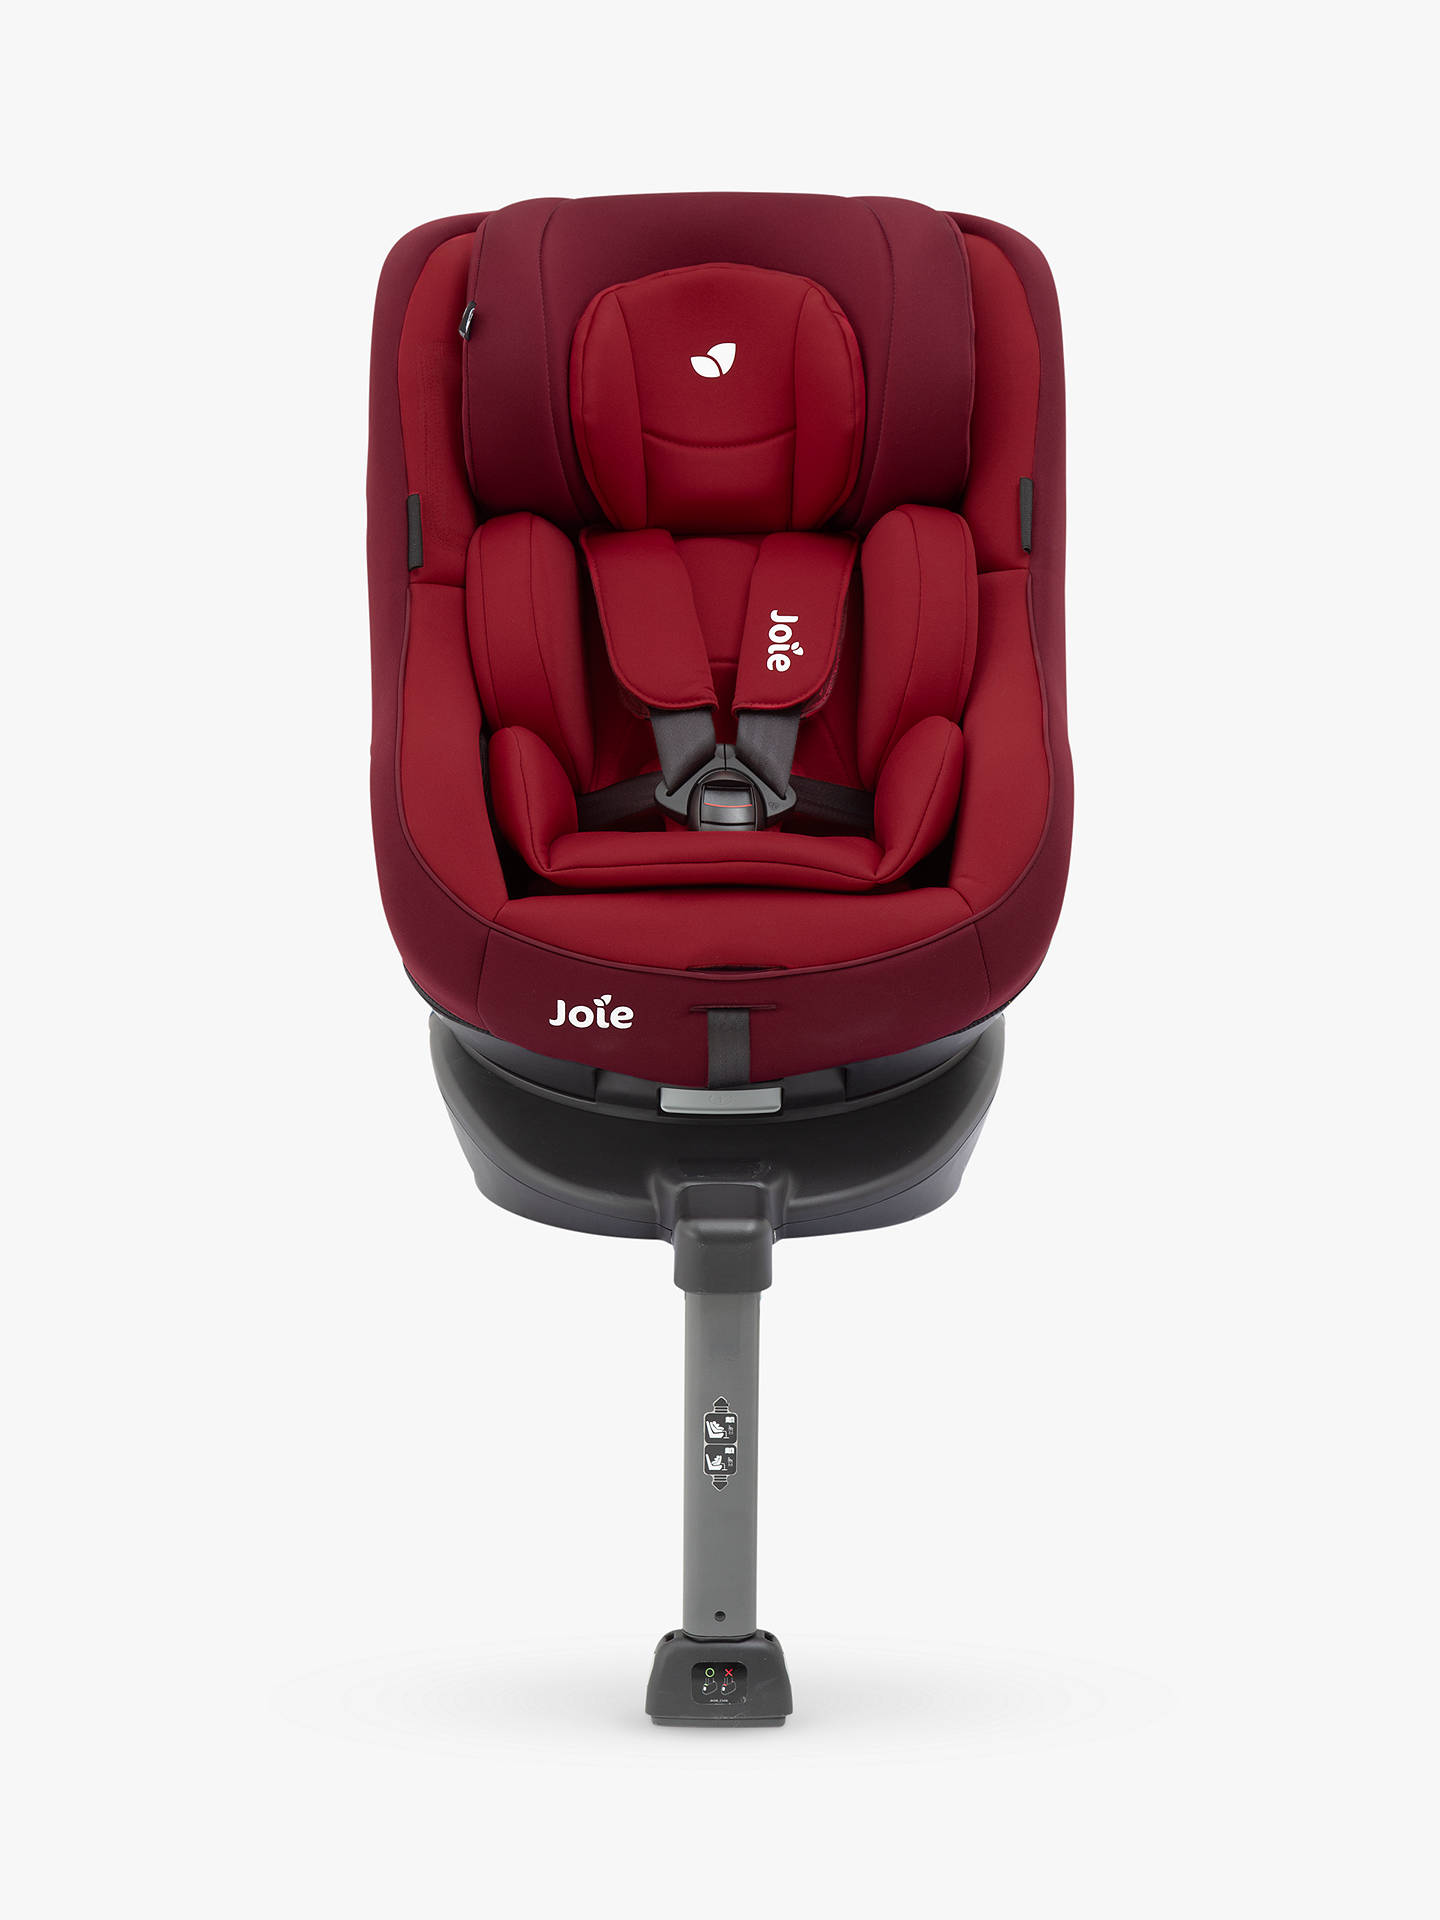 Joie Baby Spin 360 Group 0+/1 Car Seat, Merlot at John ...